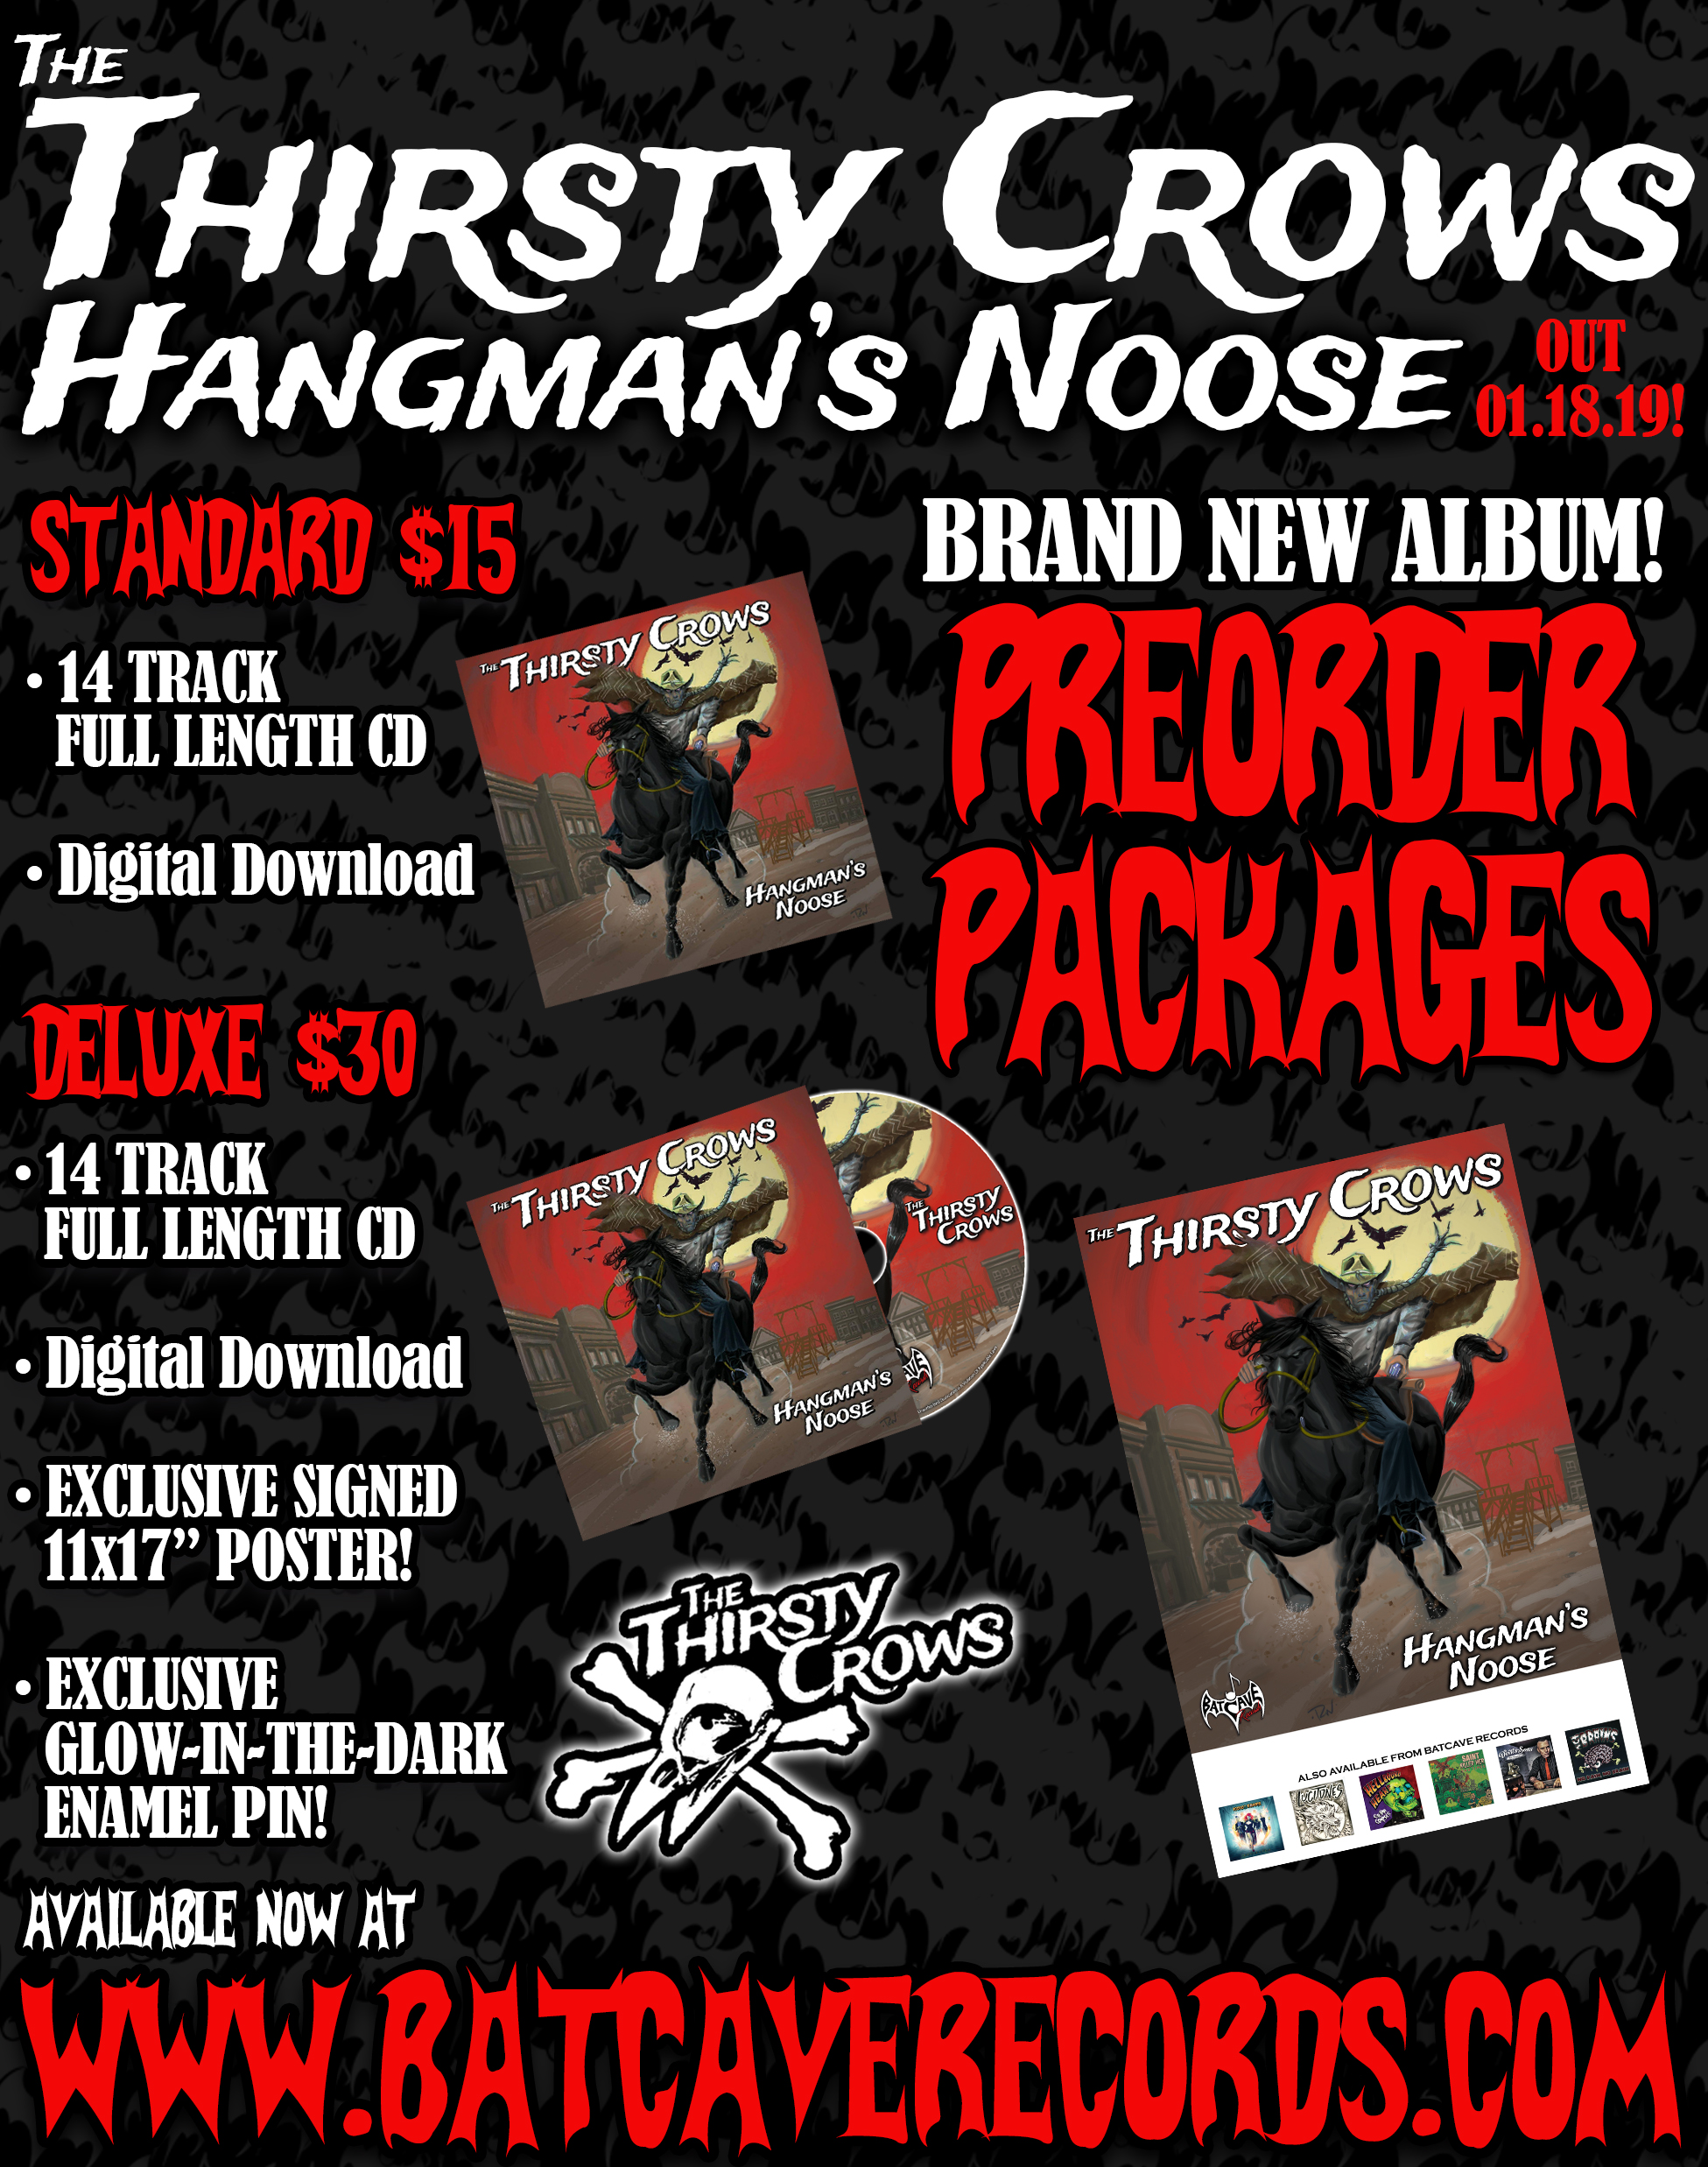 Hangman's Noose will be released 18th of January, 2019. Pre-order your copy by clicking the link above! Pre-orders ship 2nd of January, so get yours in now!